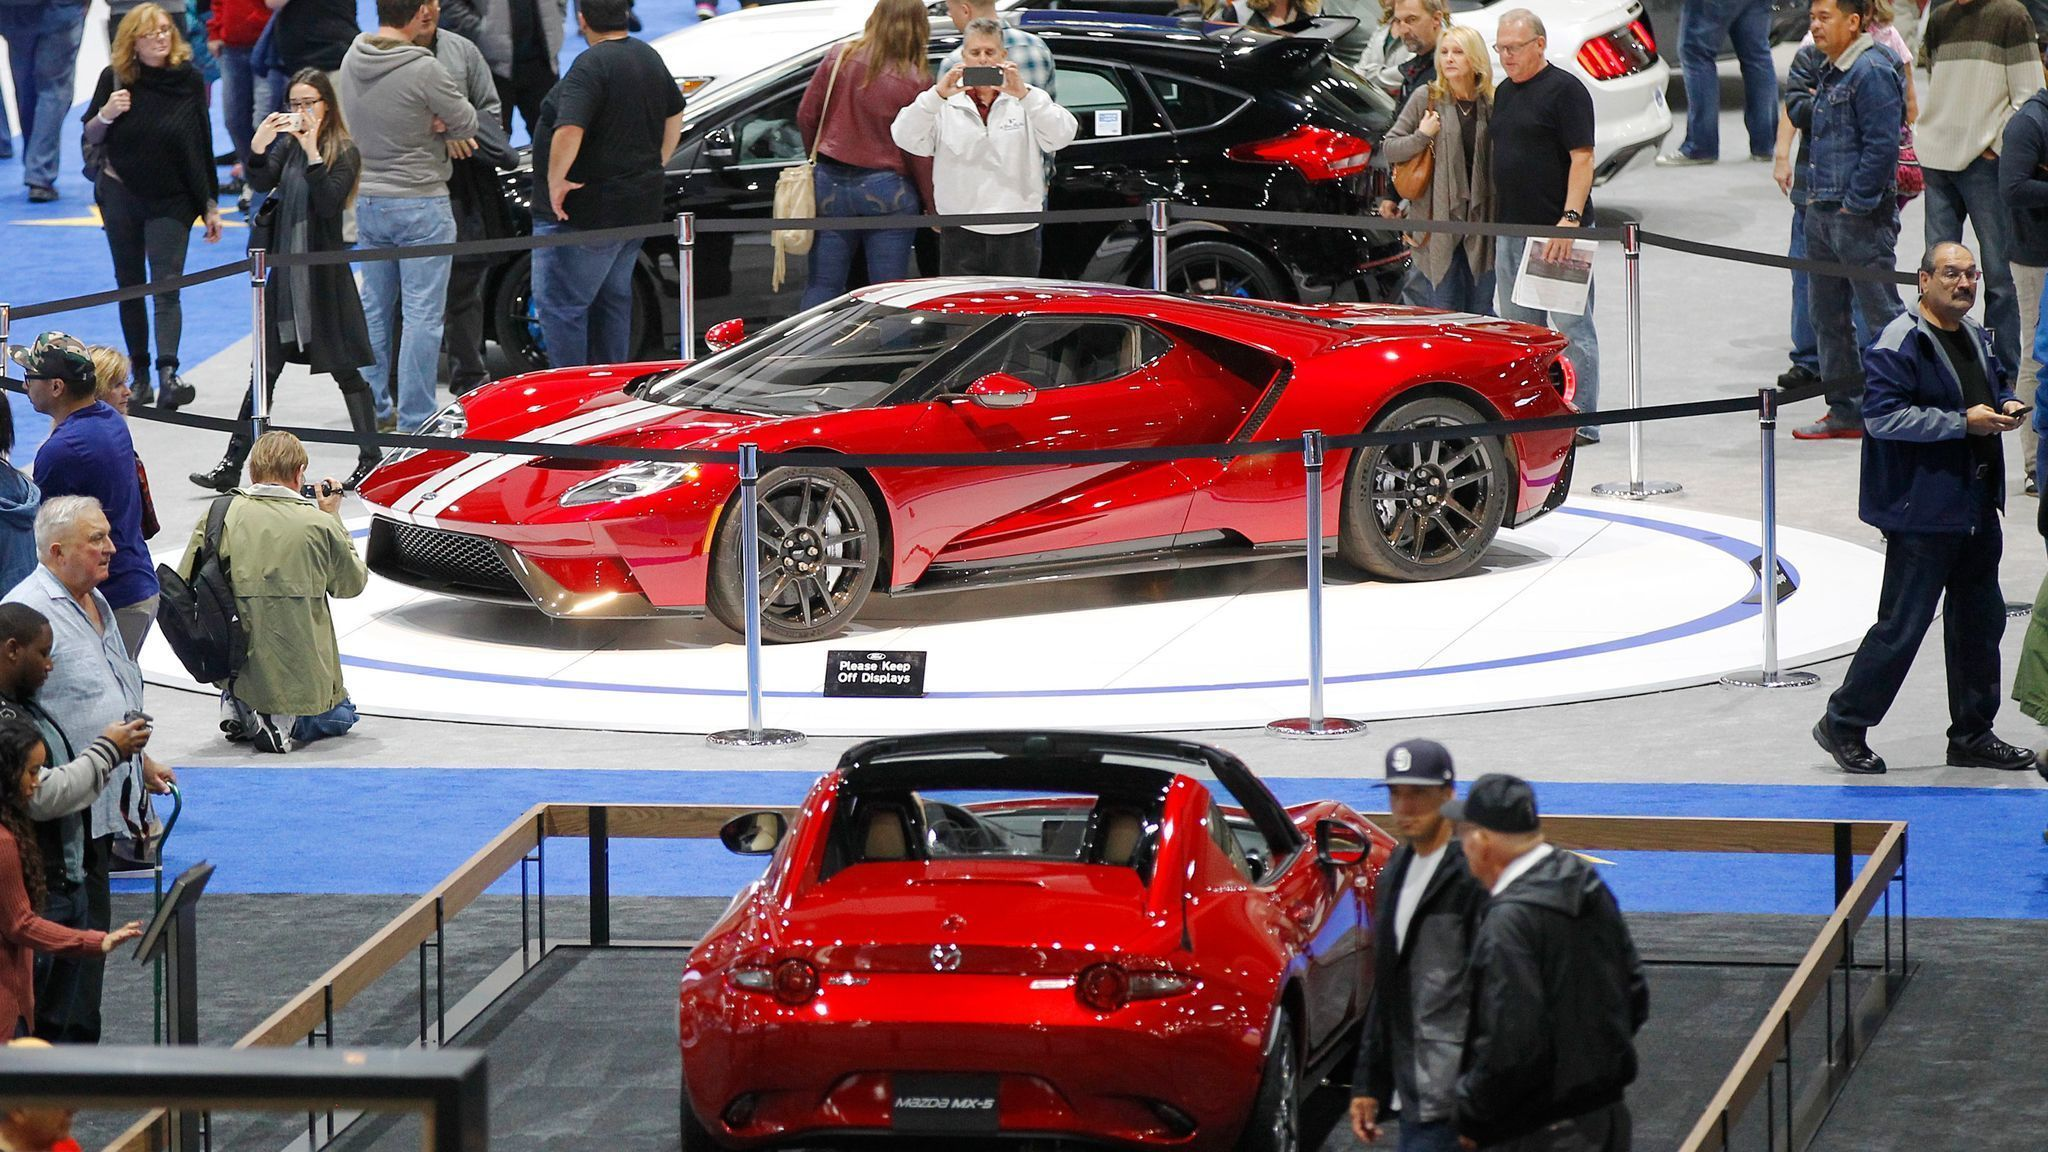 Fantasy And Reality Meet At The San Diego International Auto Show - Car shows around me